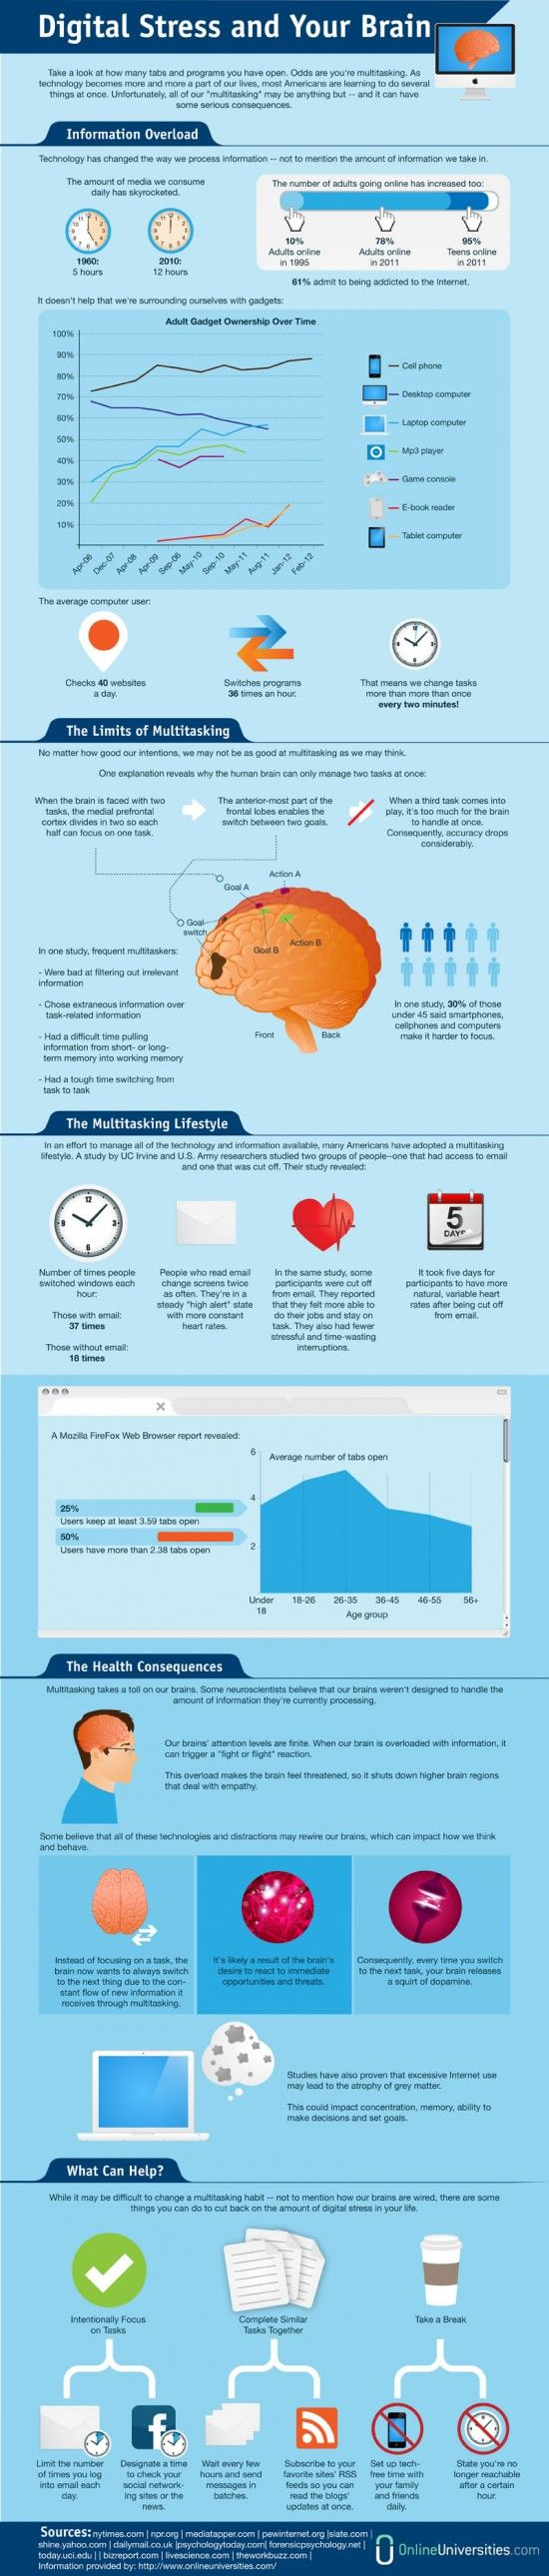 Digital Stress and Your Brain #infographic